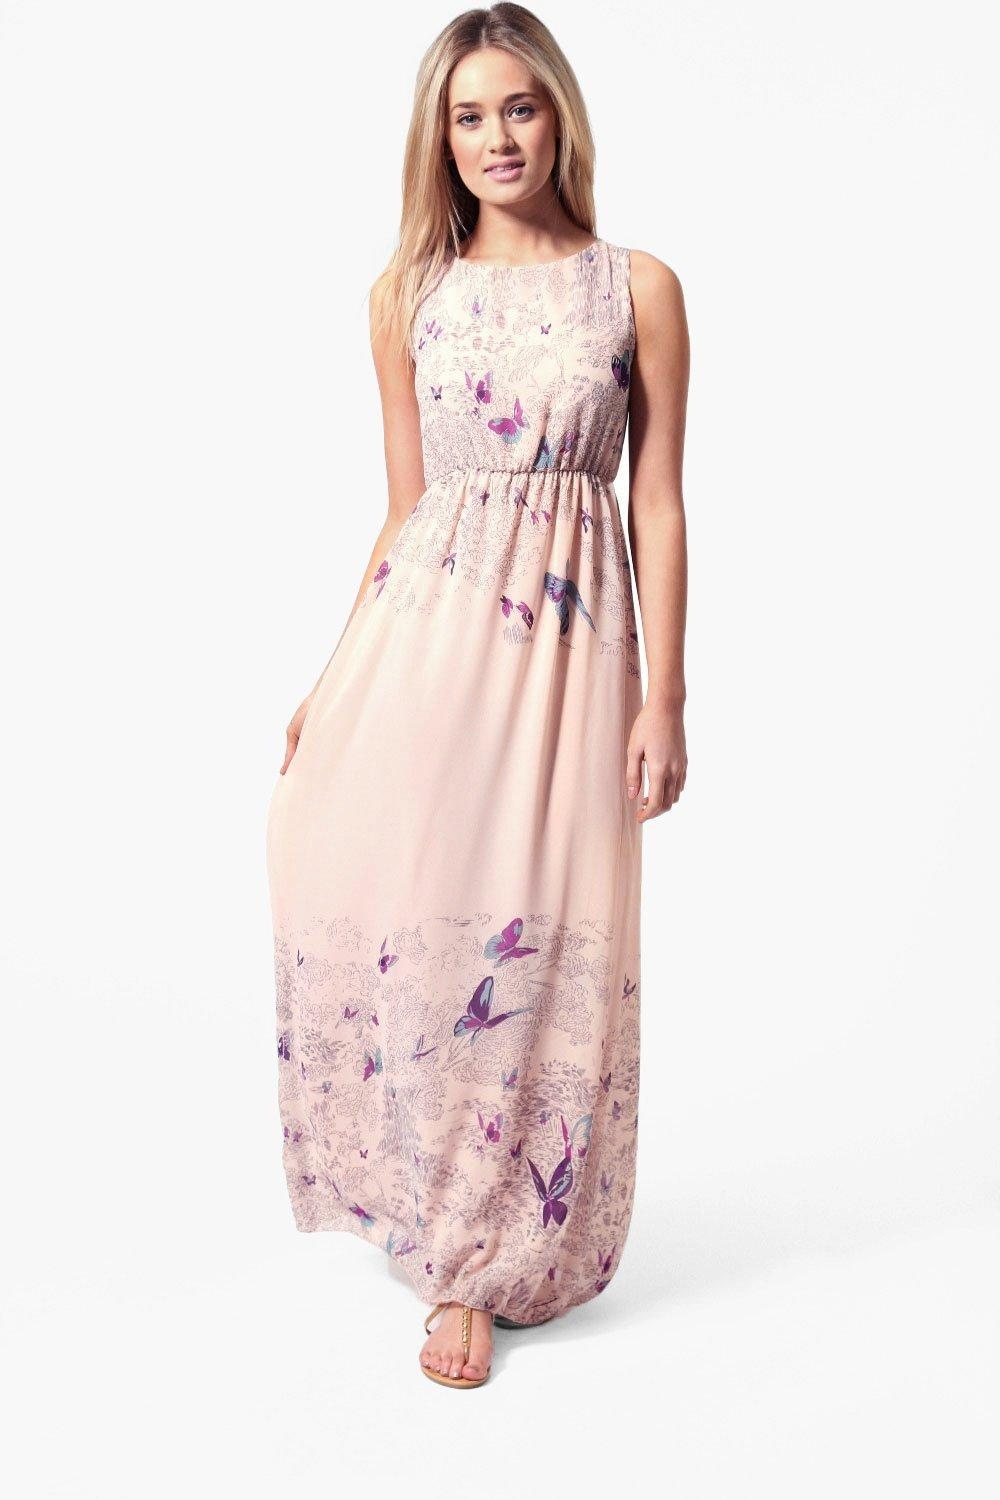 Rachel Tie Back Border Print Butterfly Maxi Dress at boohoo.com